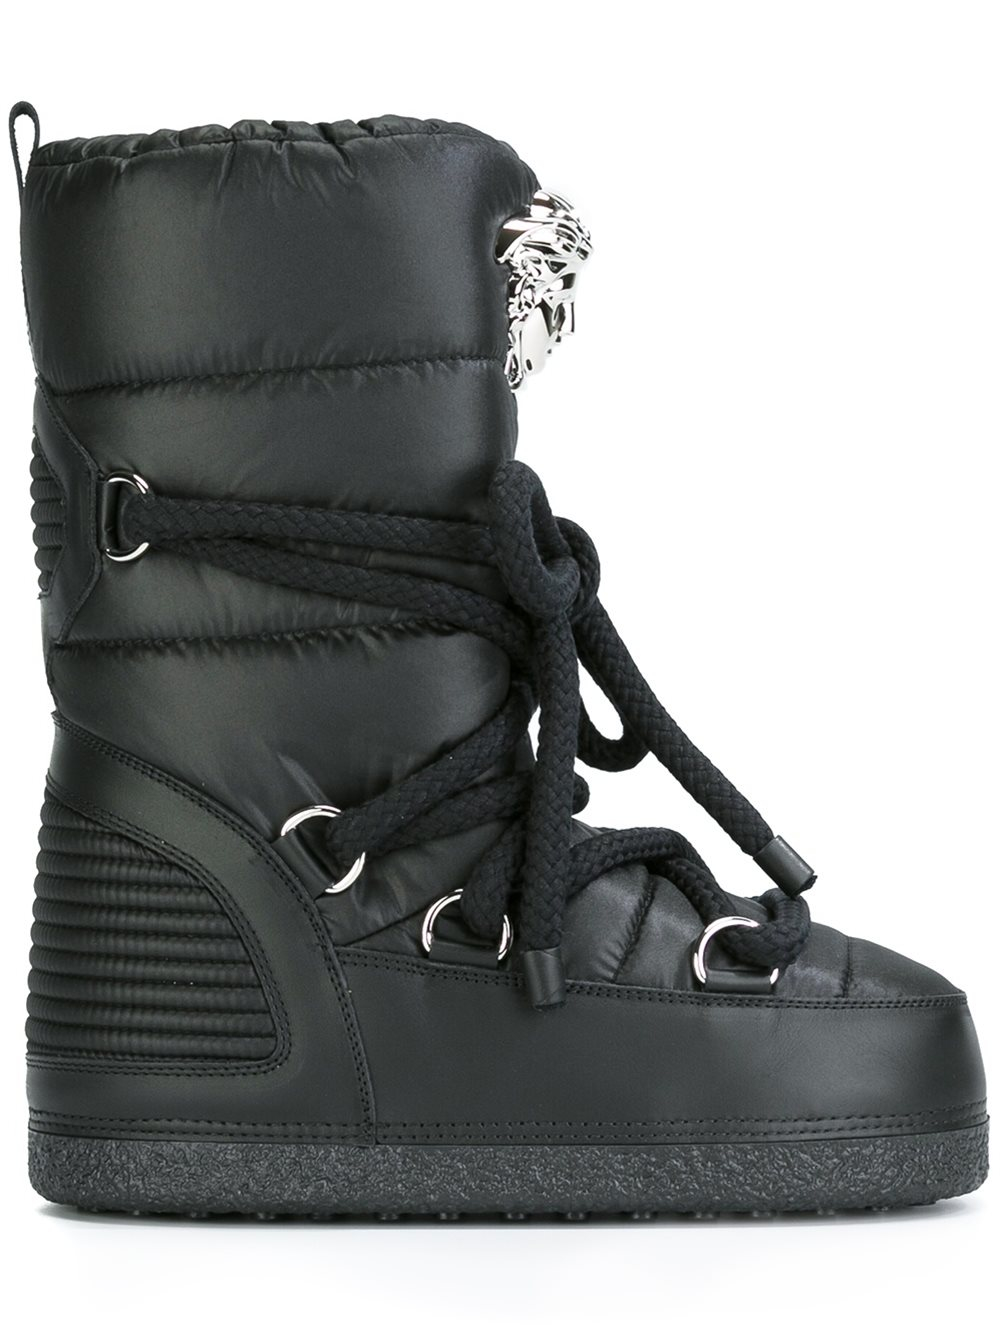 Versace Leather 'palazzo' Snow Boots in